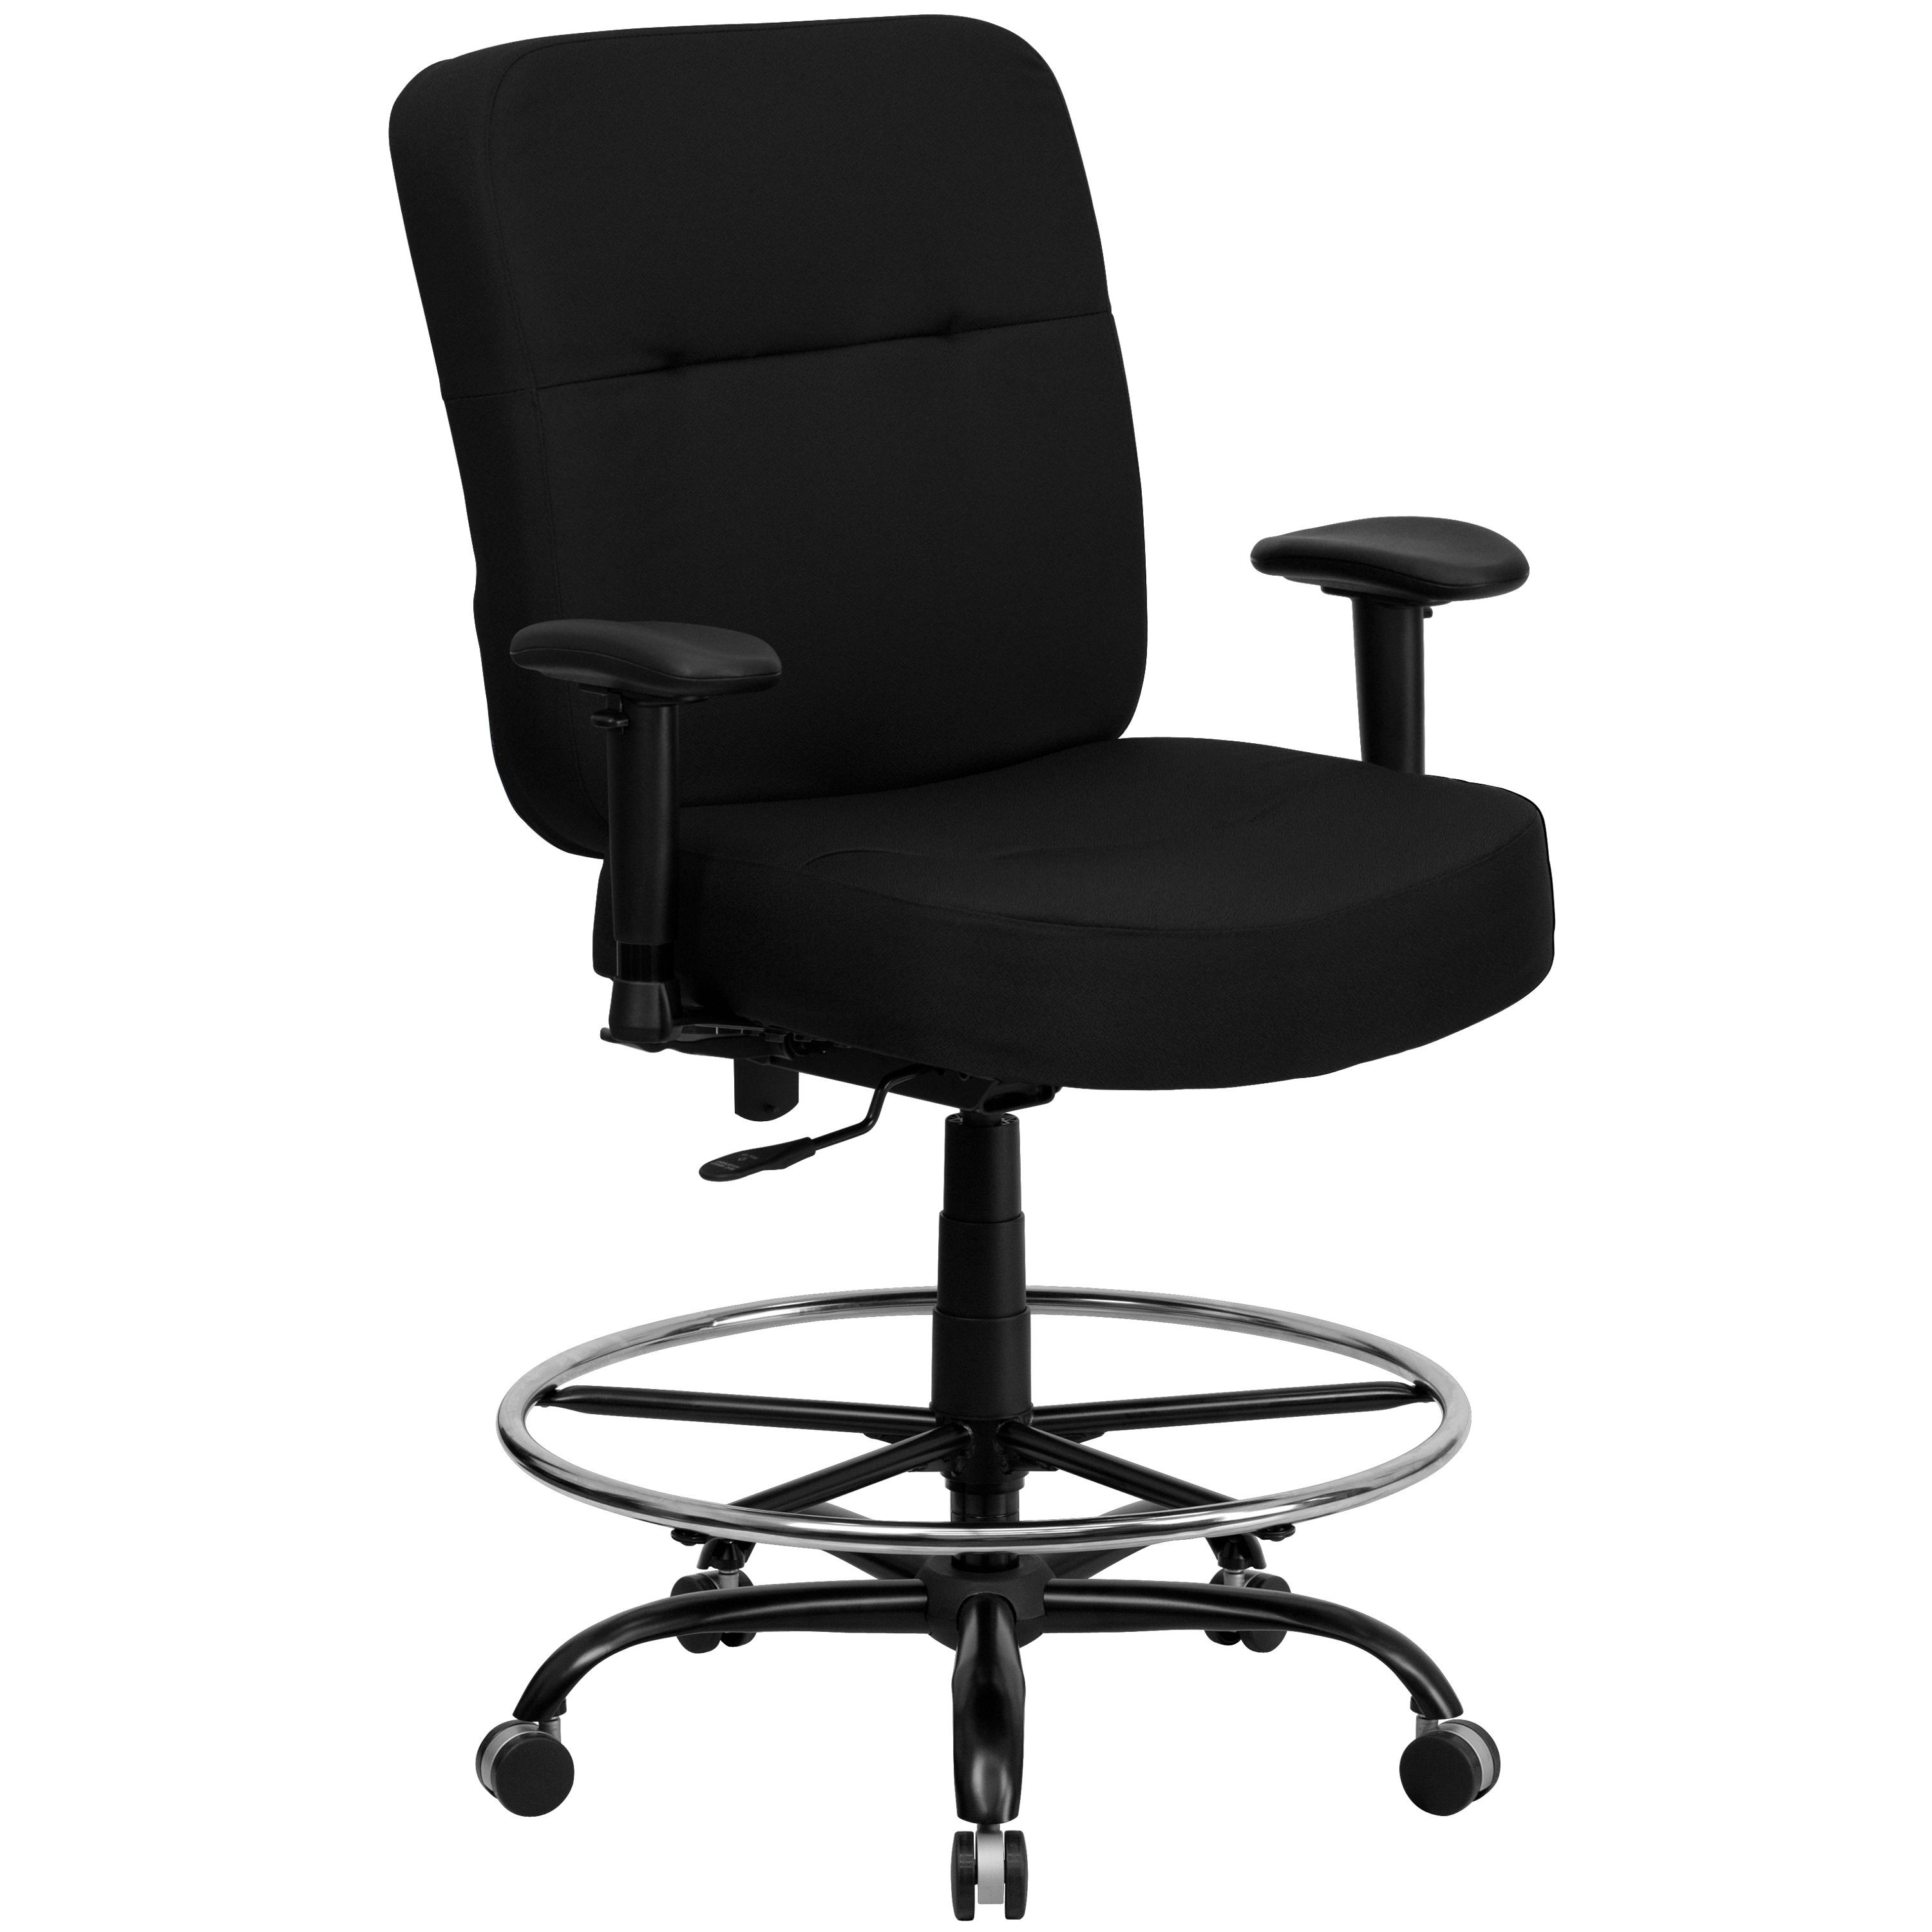 HERCULES Series 400 lb. Capacity Big & Tall Black Fabric Drafting Stool with Arms and Extra WIDE Seat